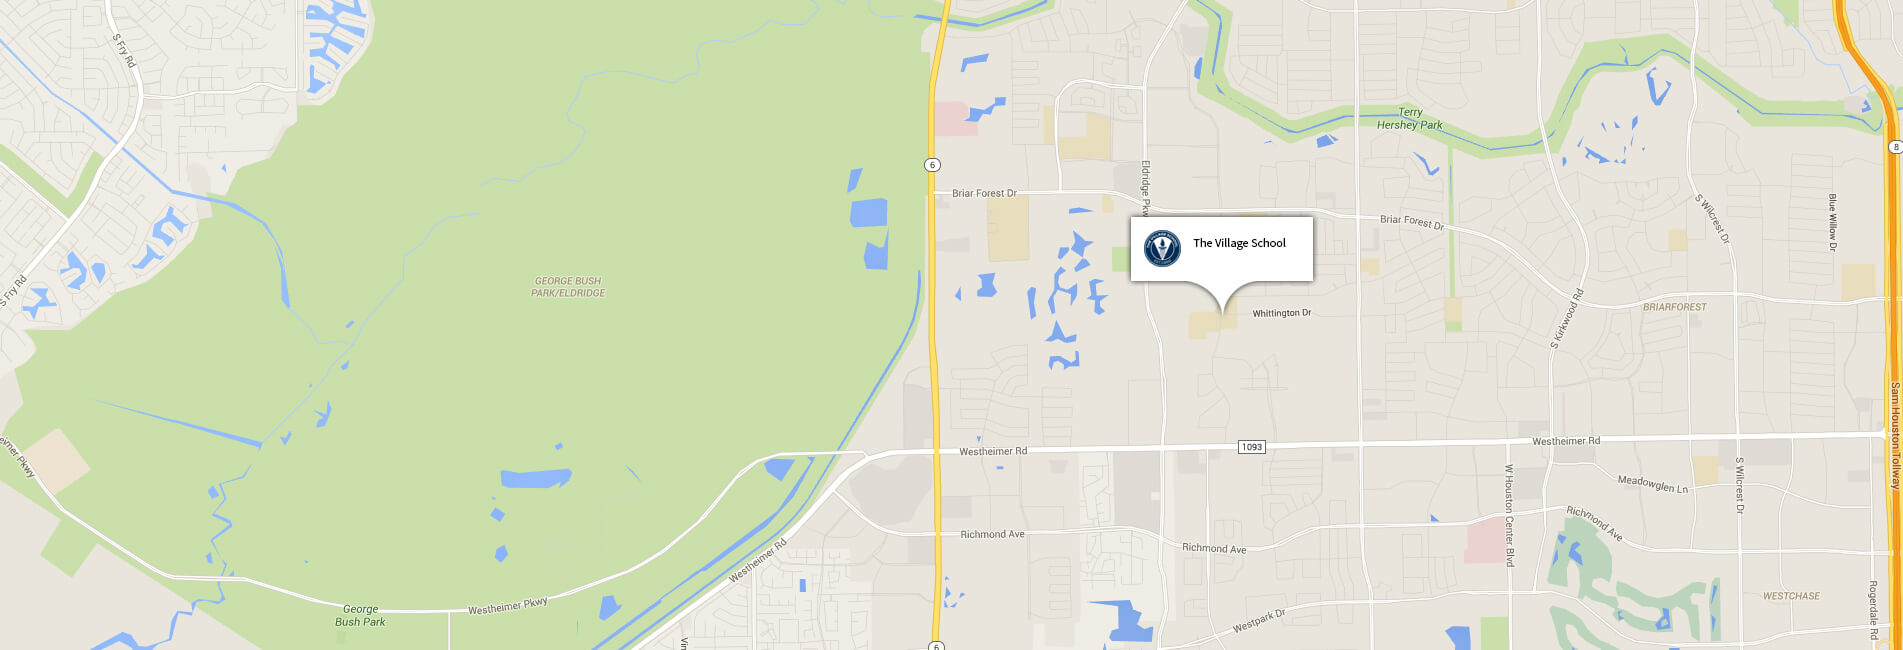 The Village School homepage map